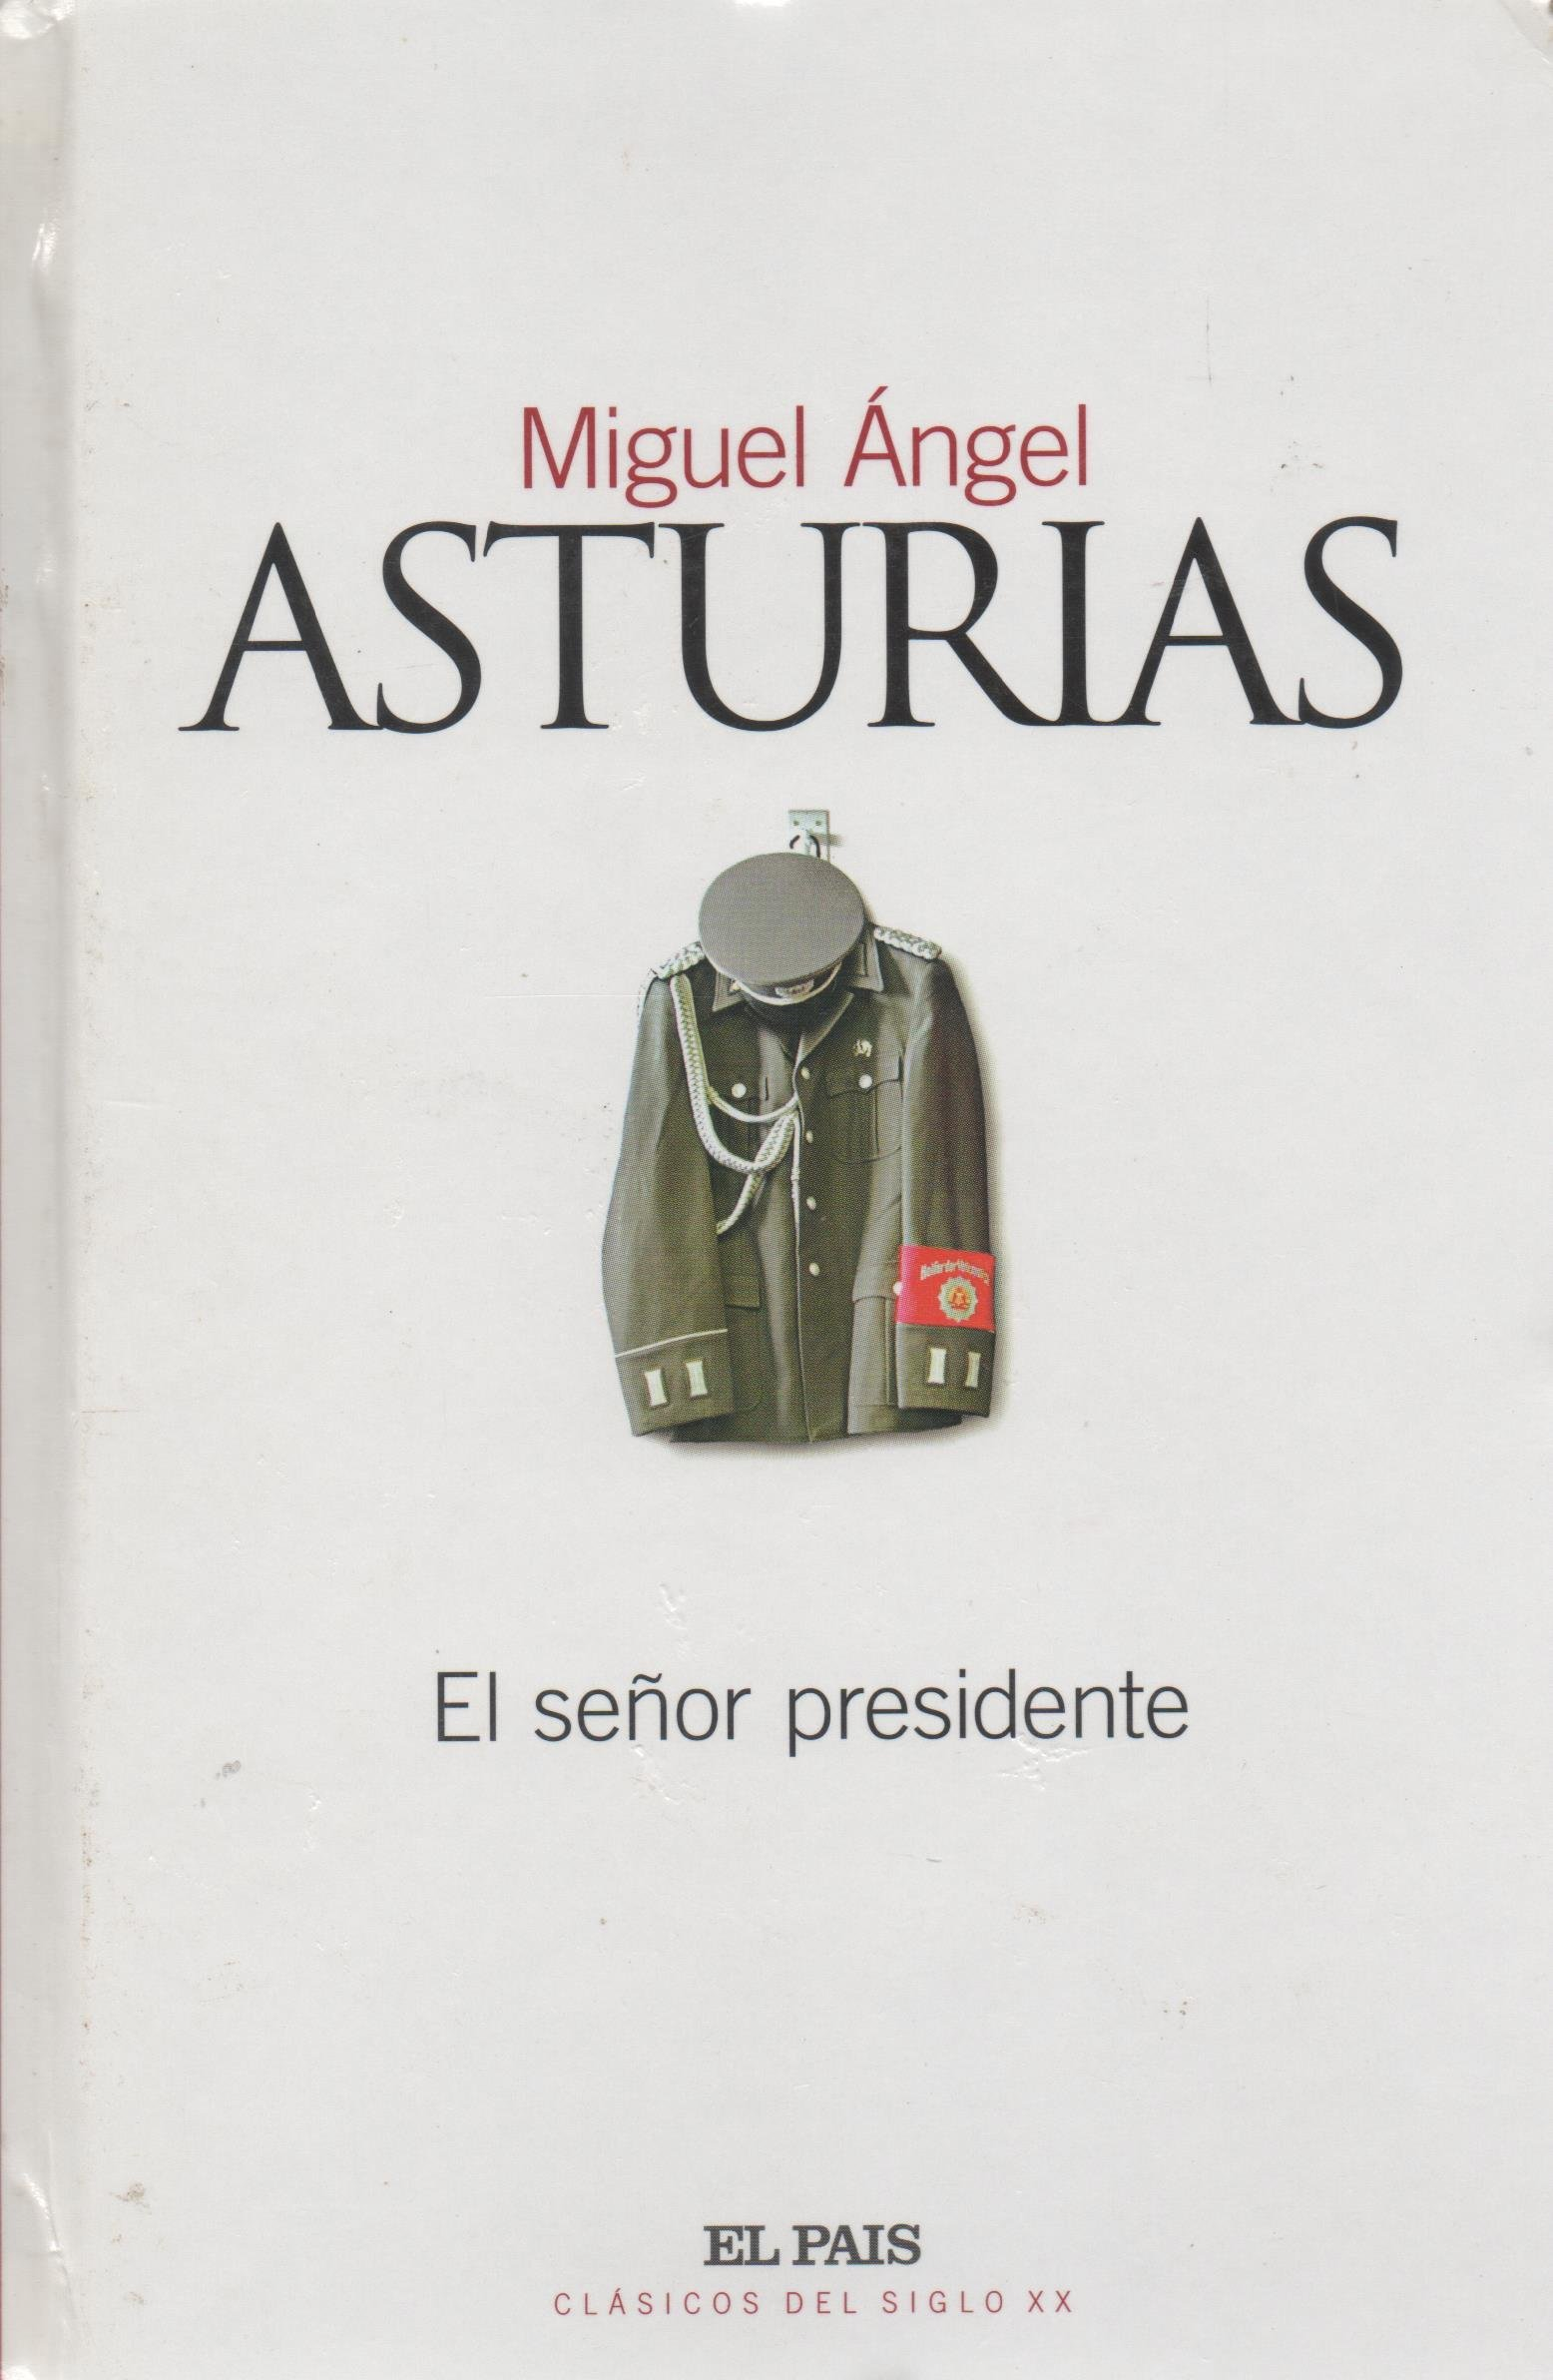 El senor presidente: Miguel Ángel Asturias: 9788489669918: Amazon.com: Books